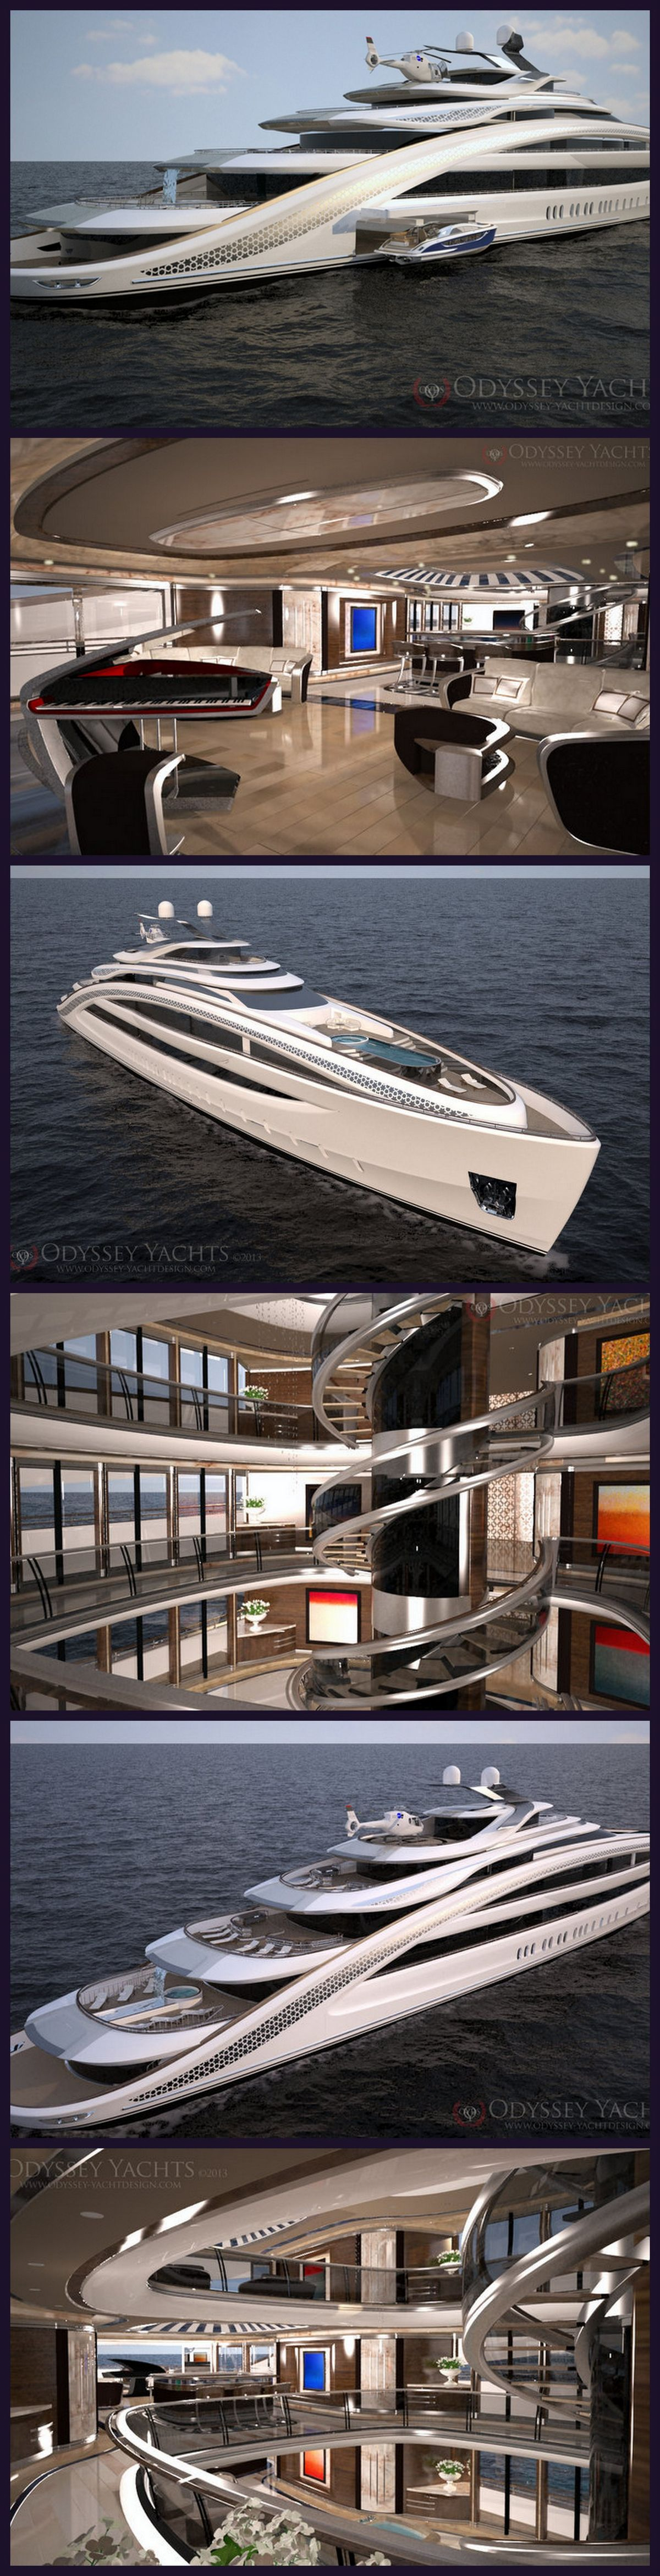 luxury motor yachts 15 best photos 40726124d8ac5efcc60dfe387130892f